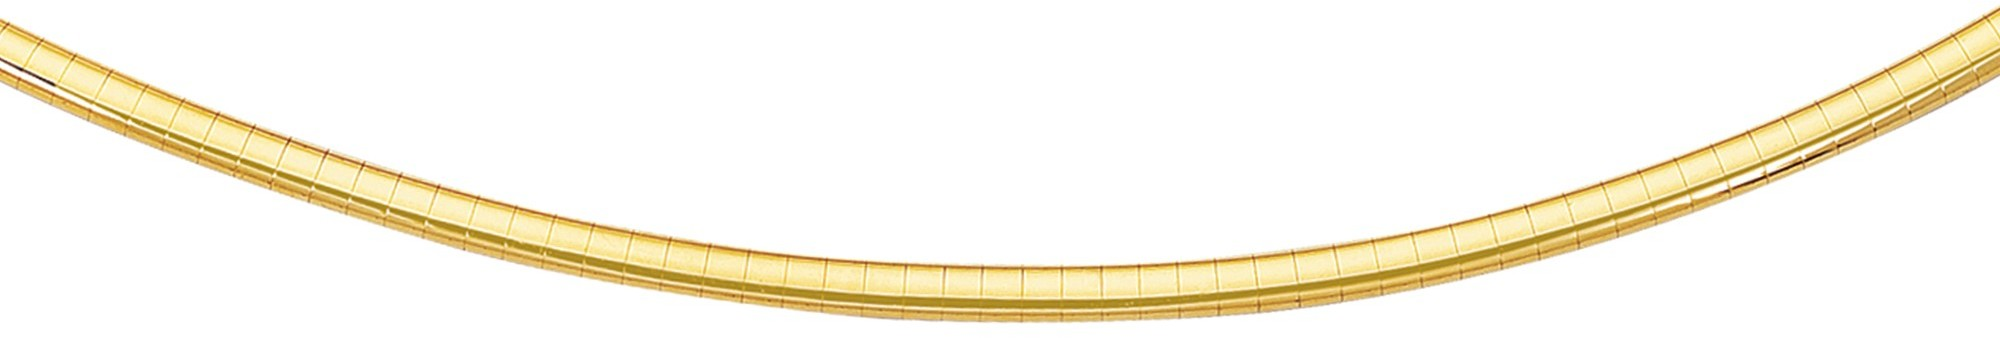 "20"" 14K Yellow Gold 3.0mm (1/8"") Polish Diamond Cut Classic Omega Necklace w/ Box Catch"